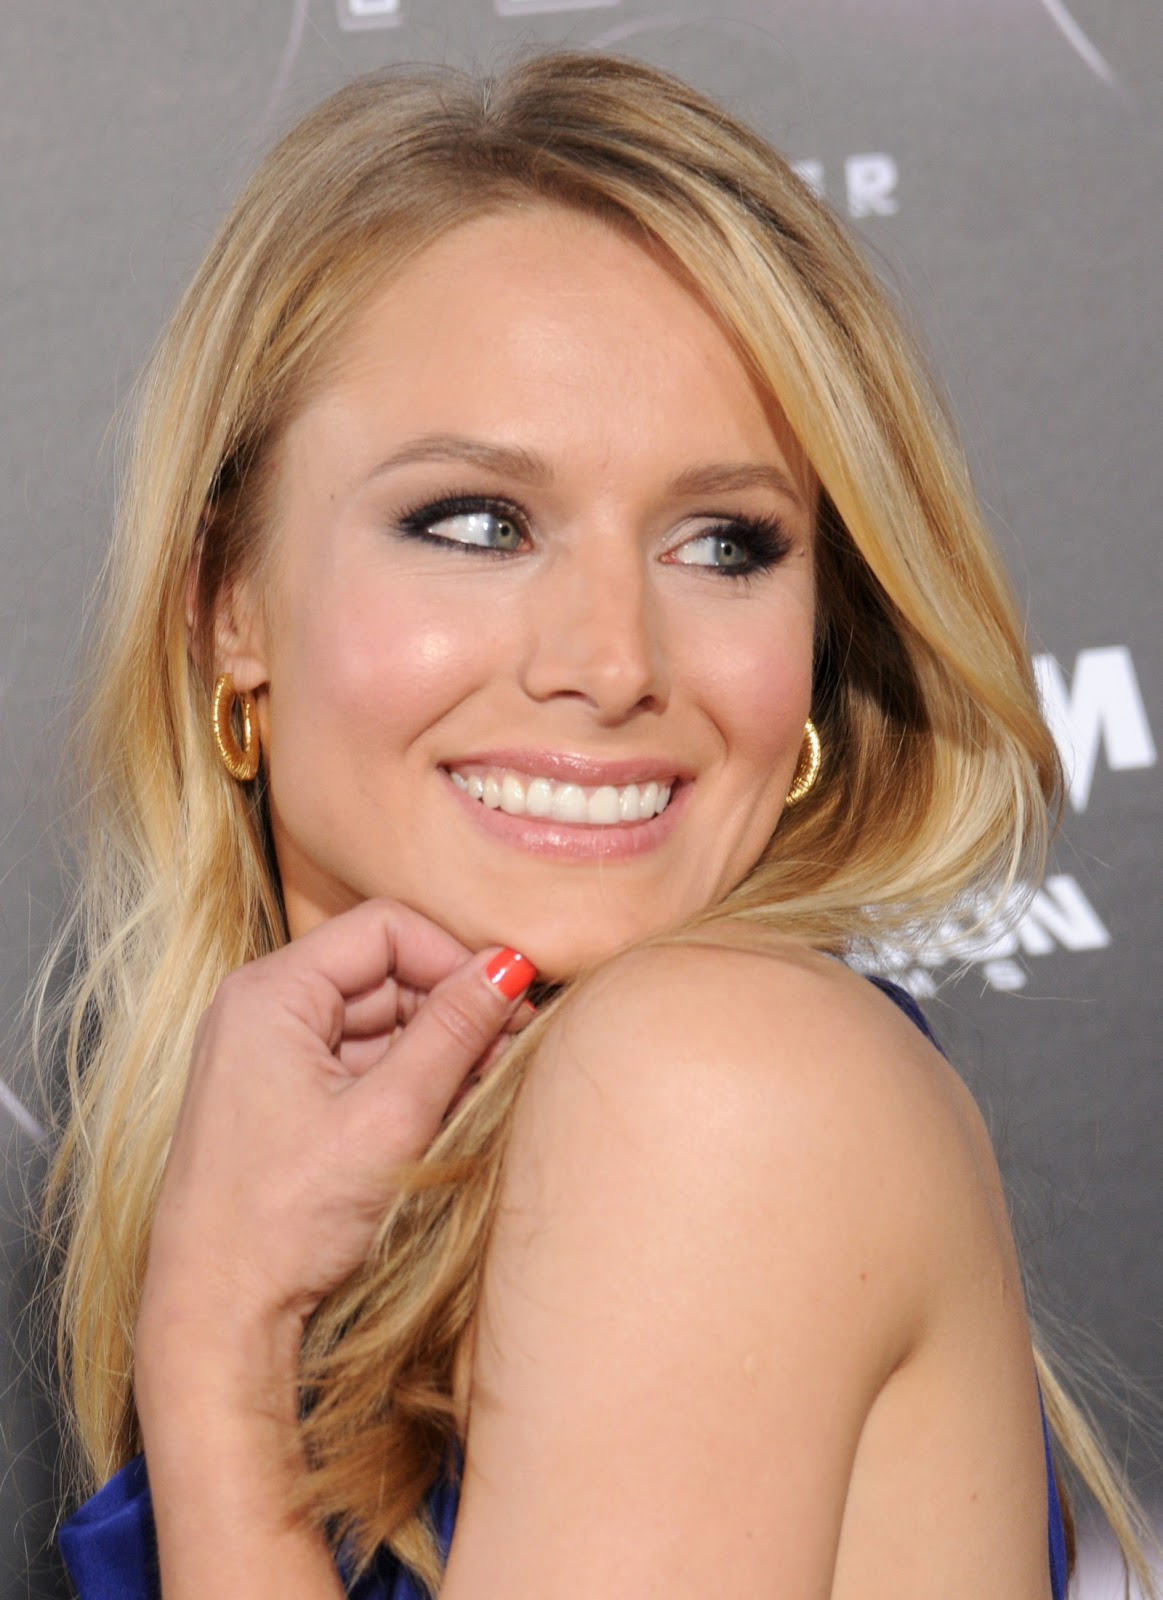 Naked Pictures Of Kristen Bell